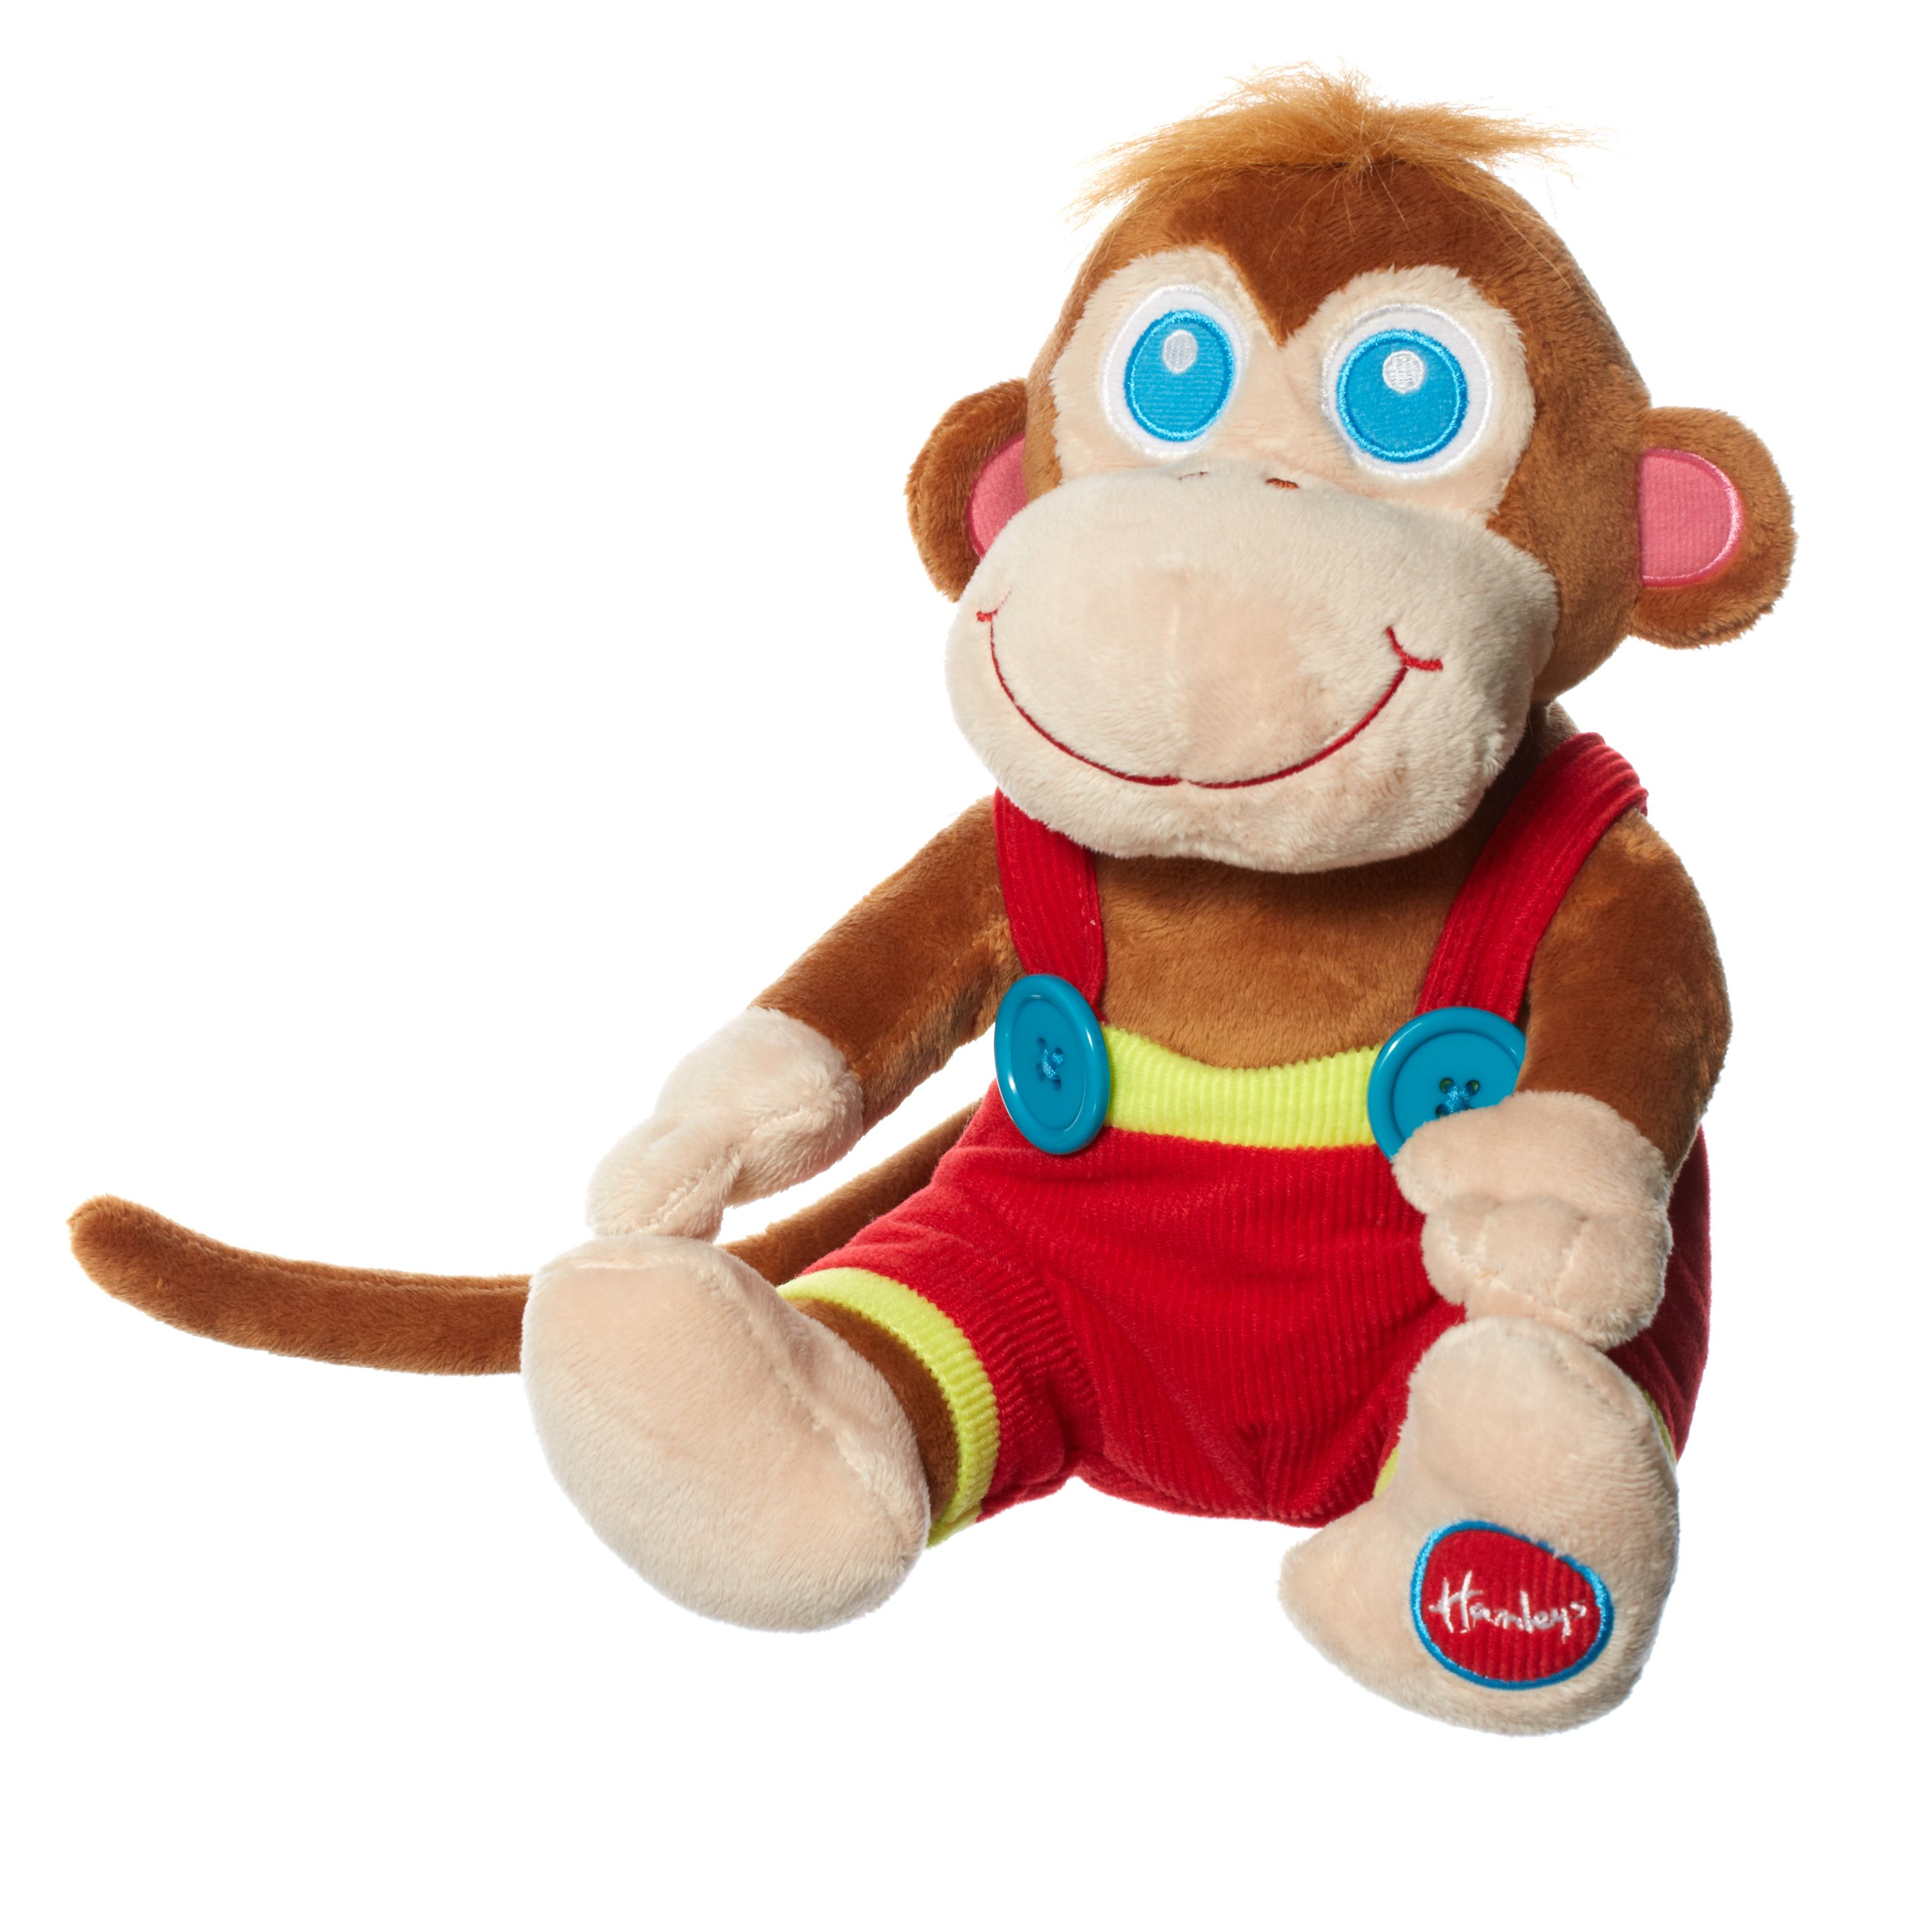 Hamleys Small Monkey Beanie